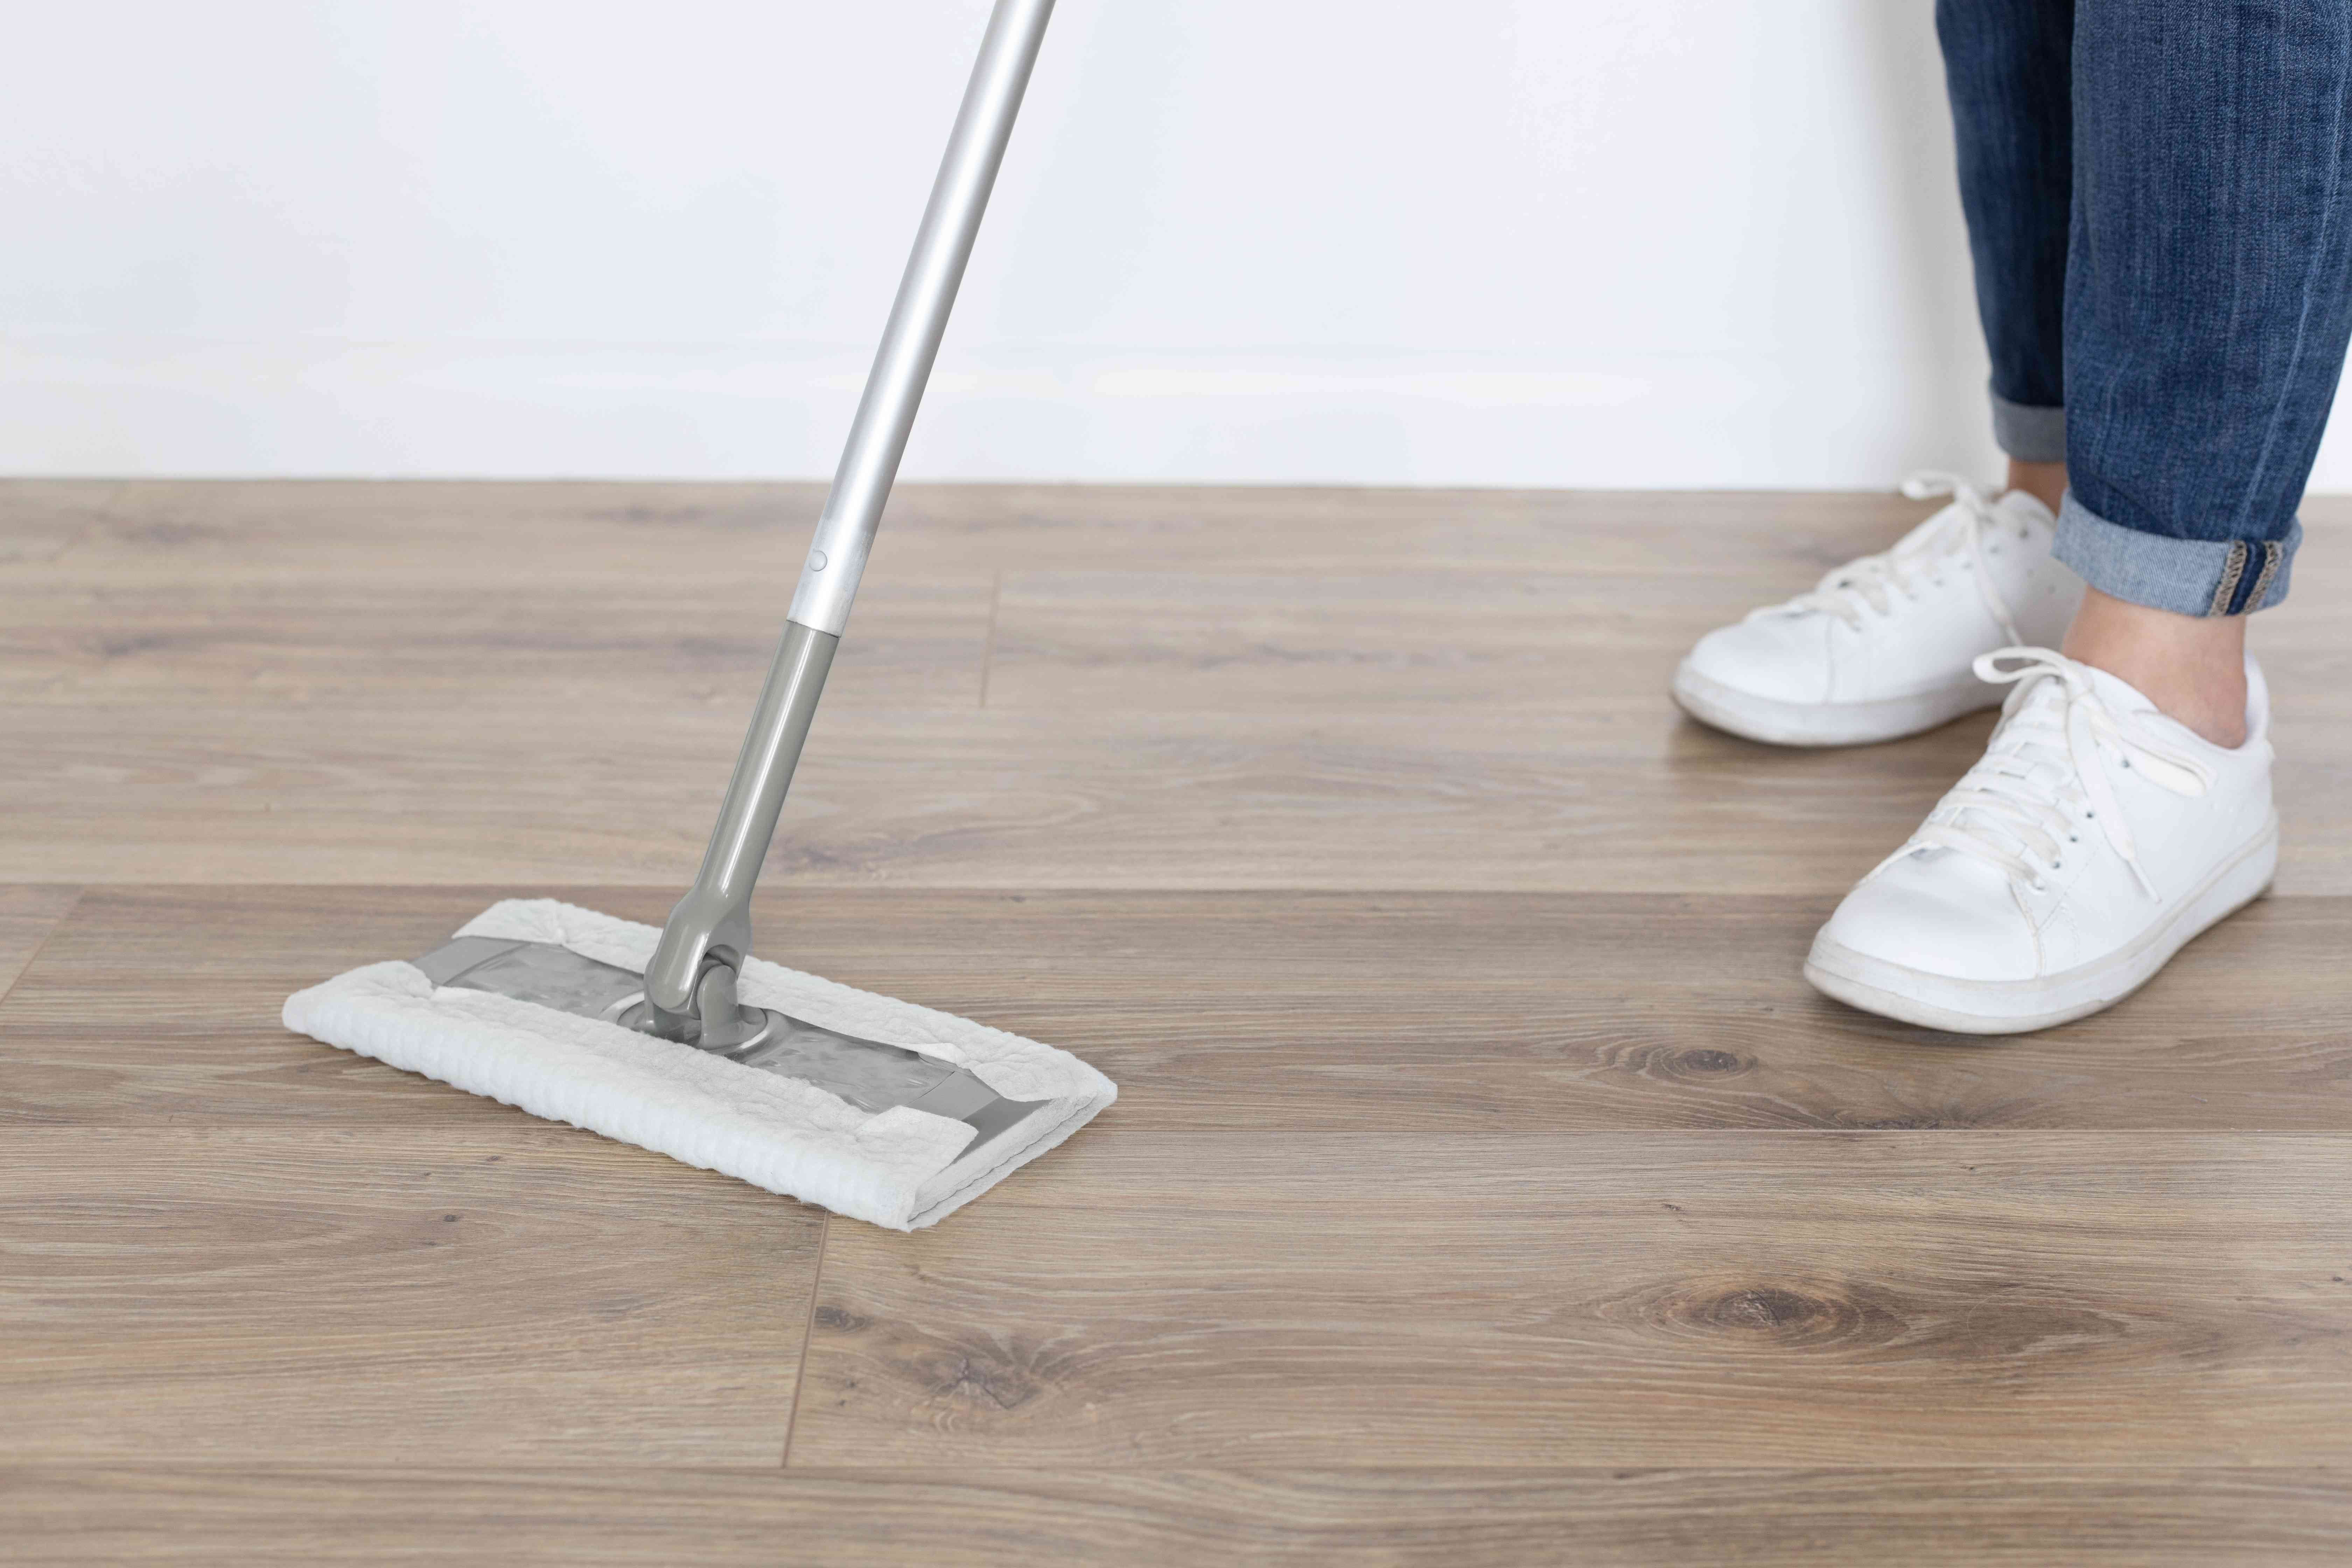 Wooden flooring being swept to prevent ants